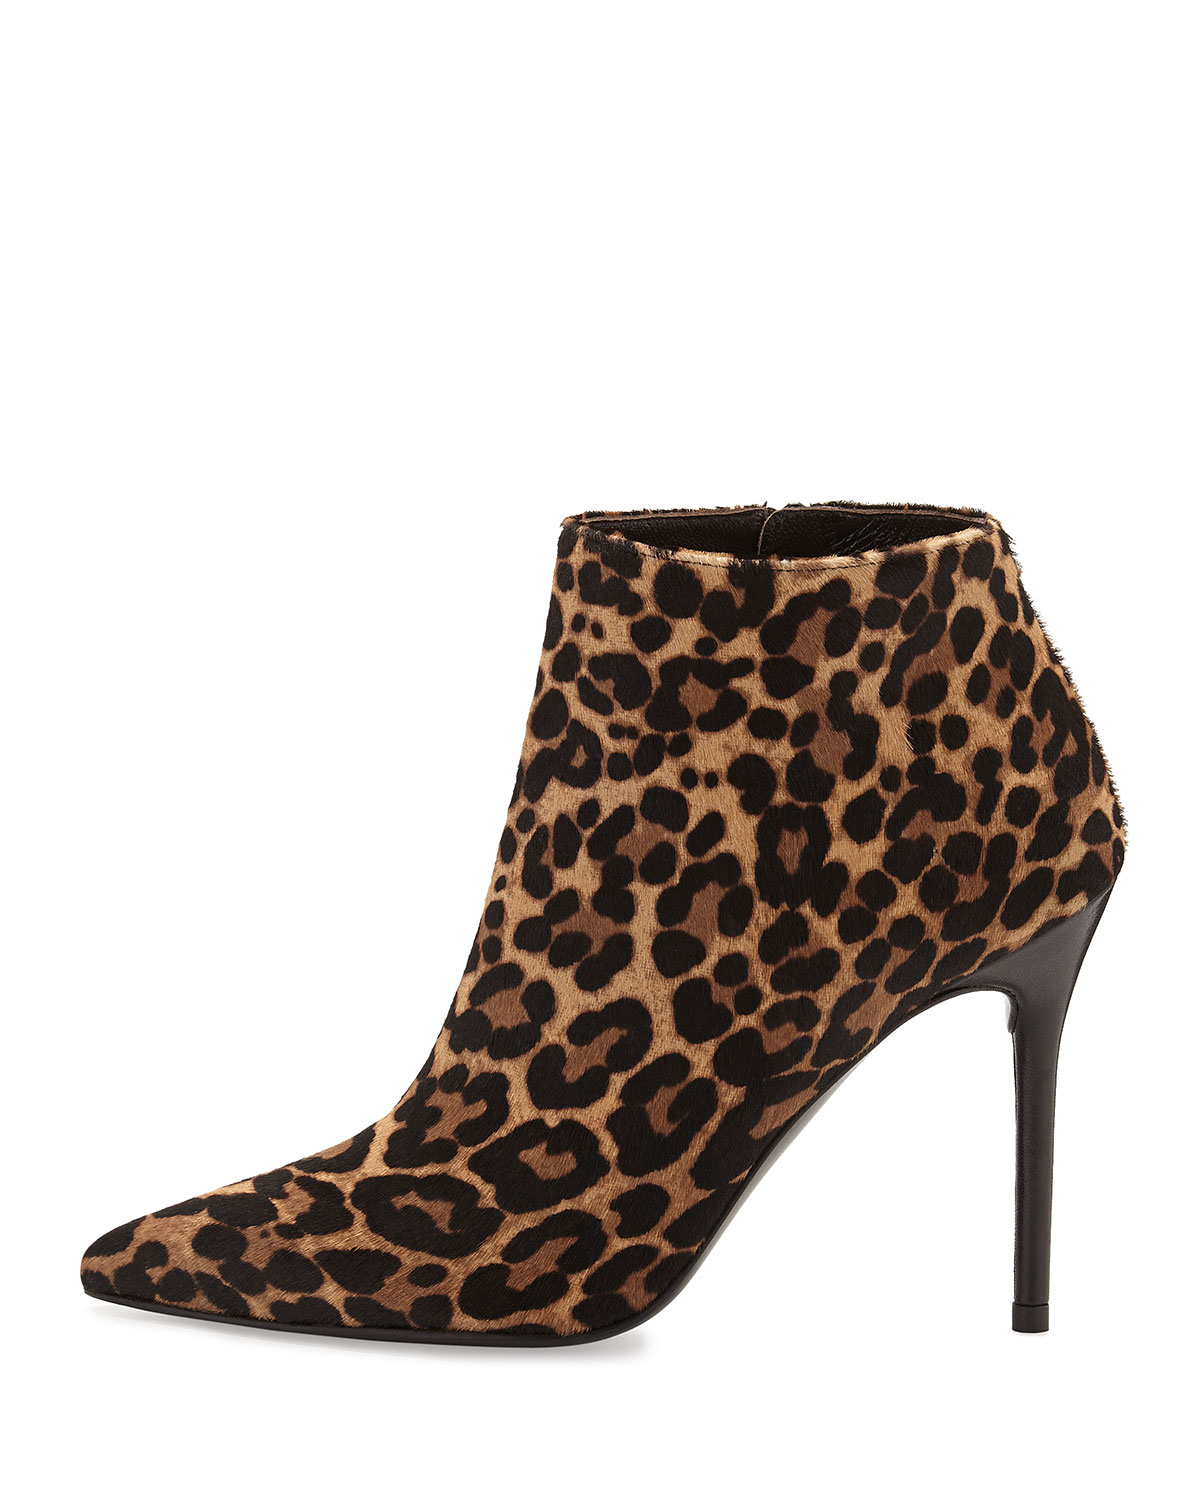 Stuart Weitzman Leopard Ponyhair Ankle Boots with credit card free shipping bNe9rzvN1m